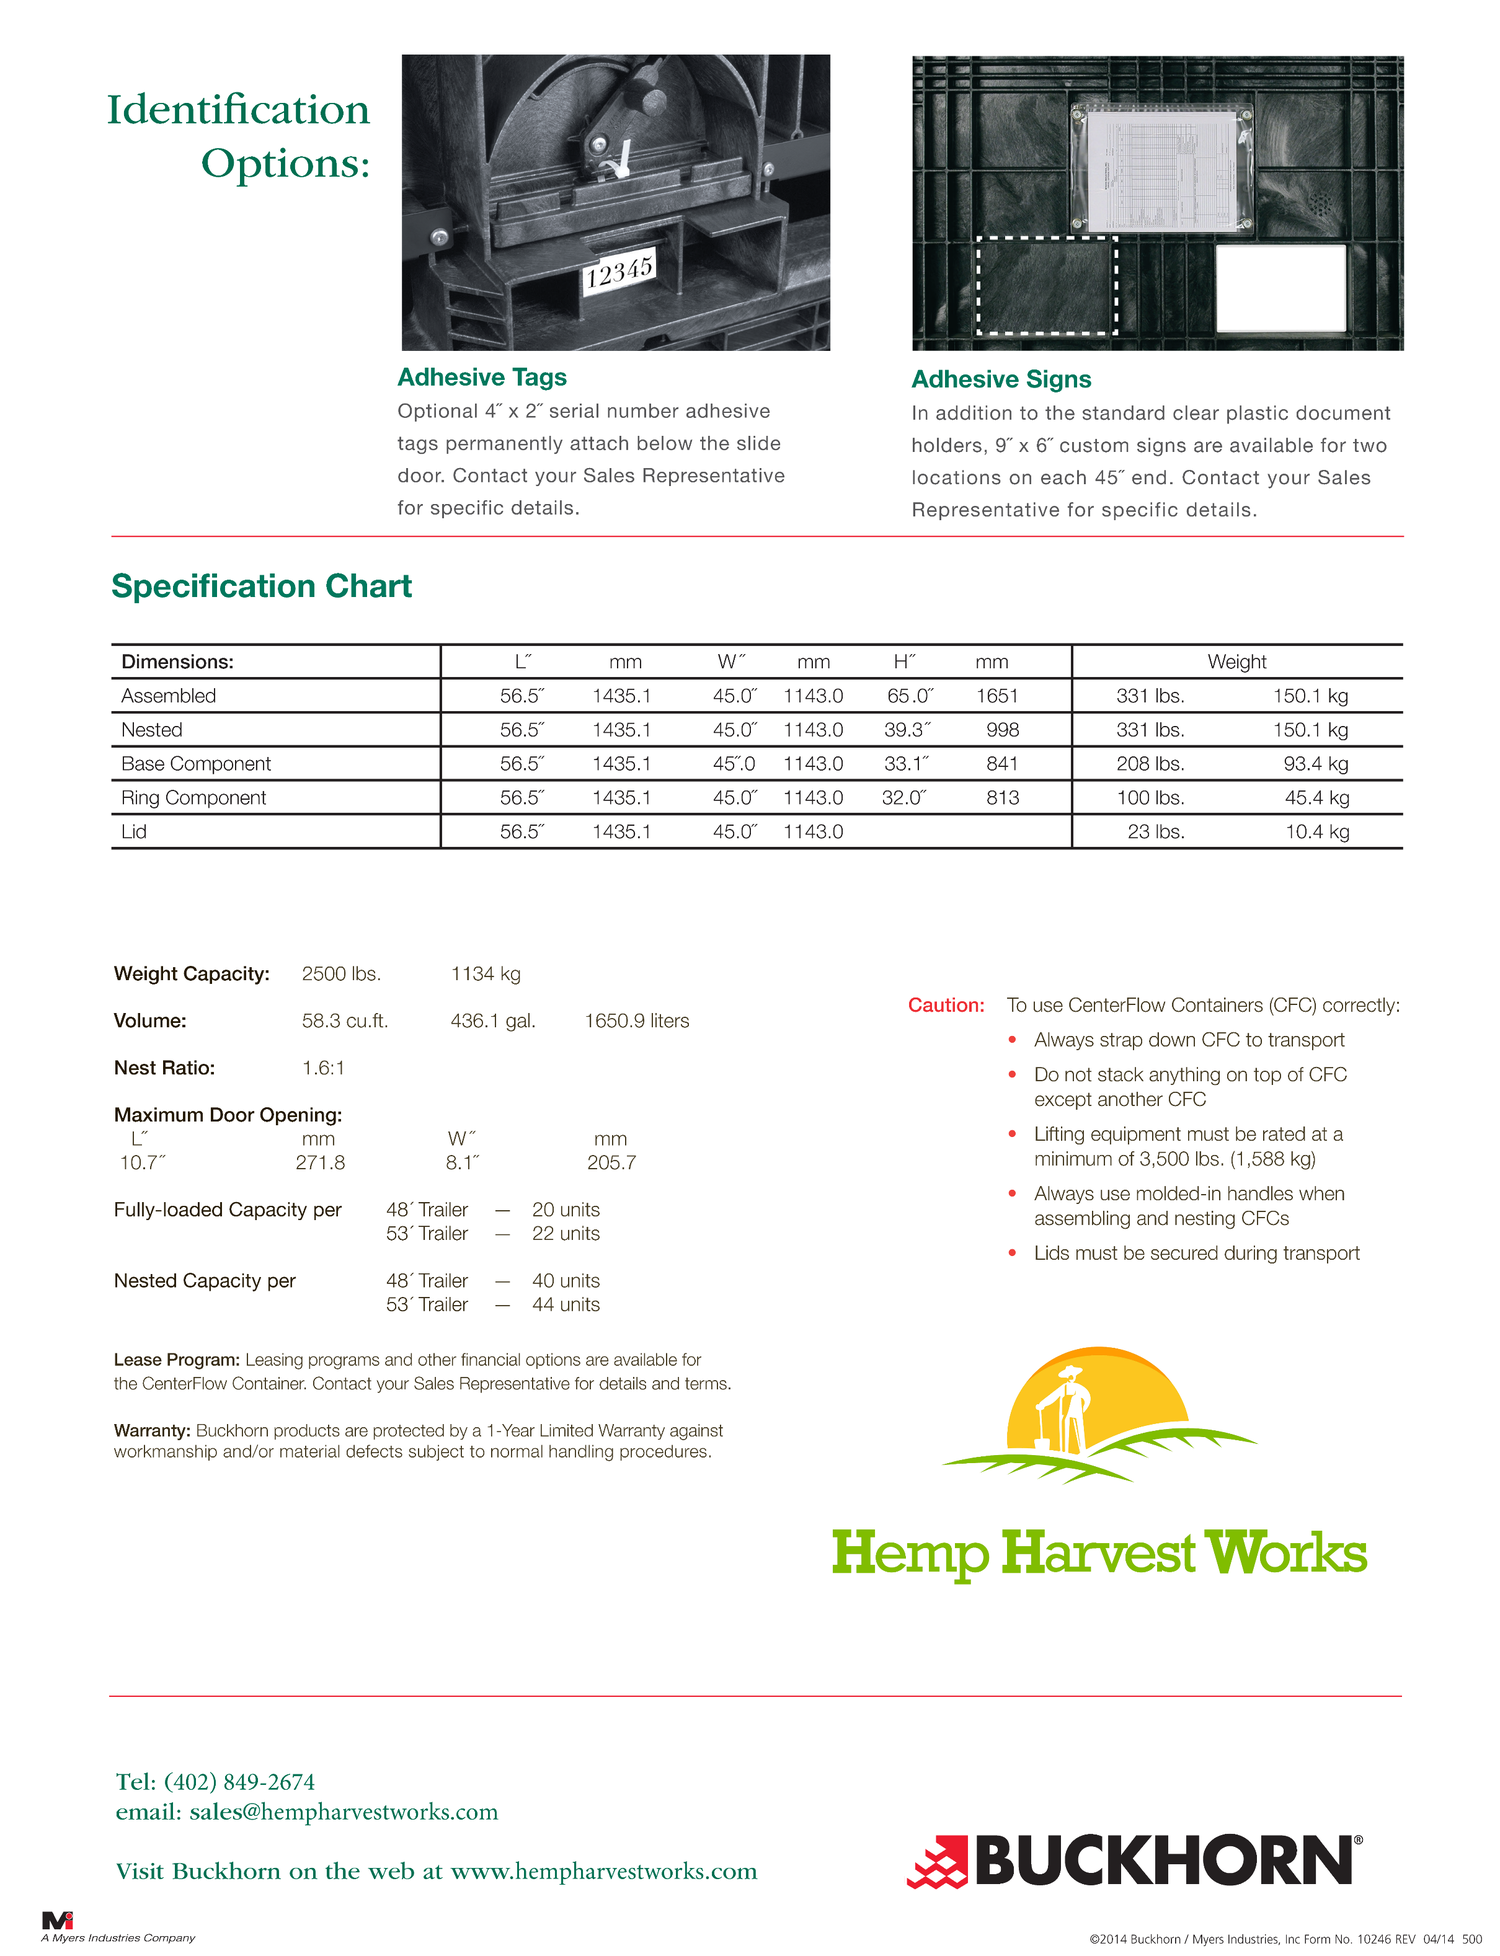 centerflow-brochure+HHW_Page_4+small.png